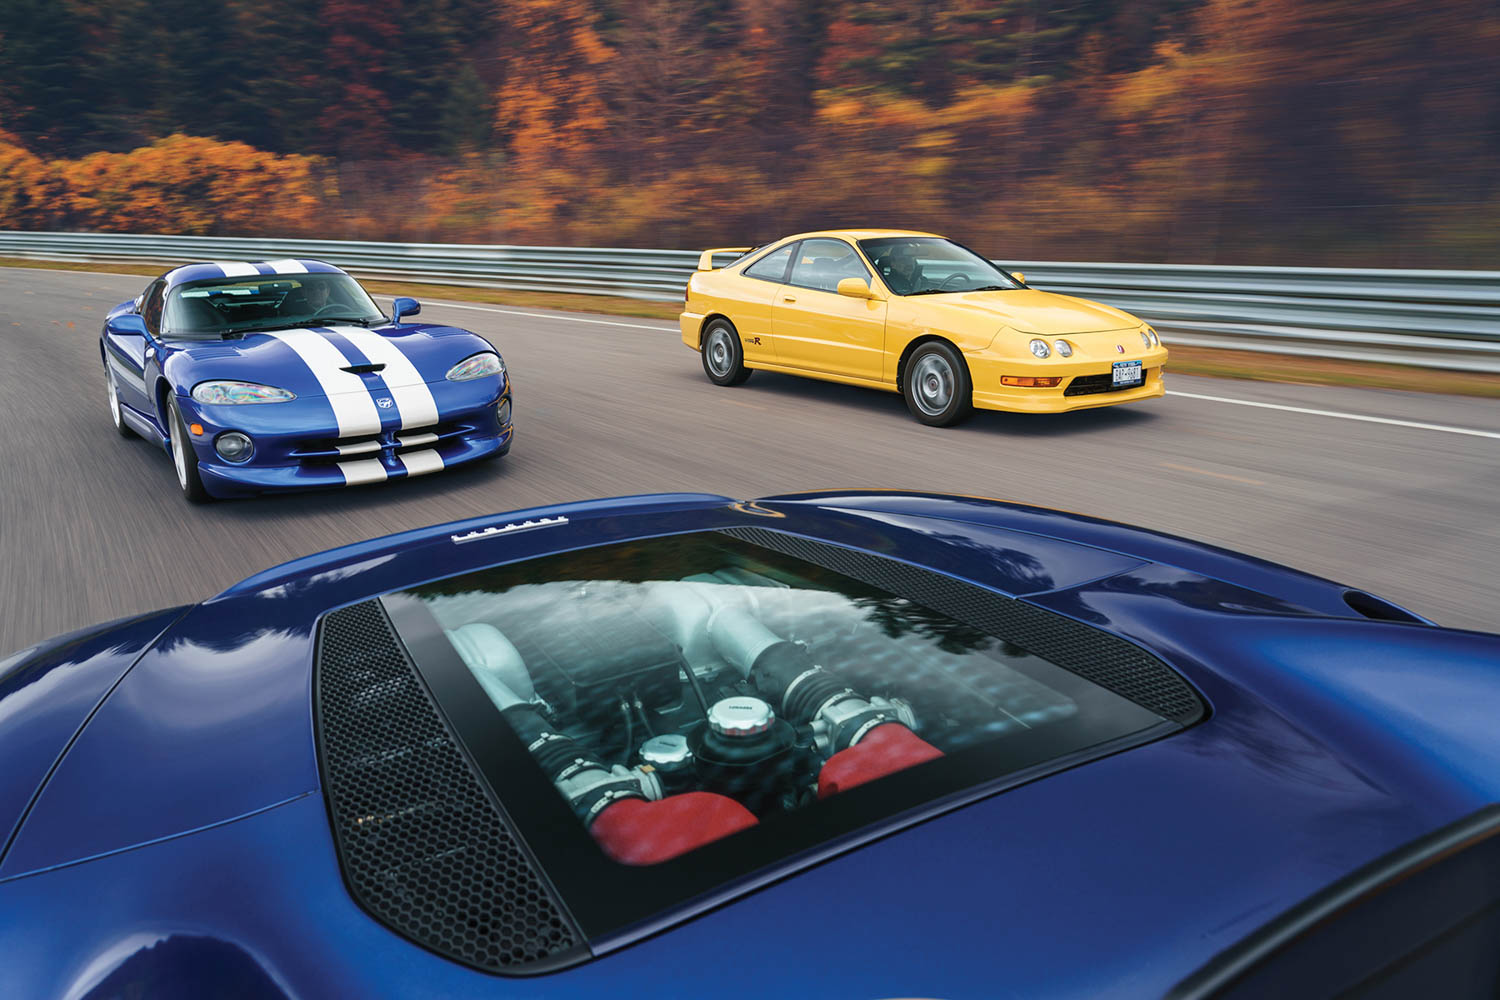 Ferrari under glass: The 360 Spider puts its V-8 in a picture window while being chased by America's own Lamborghini—the Dodge Viper—and the sublime Acura Integra Type R.